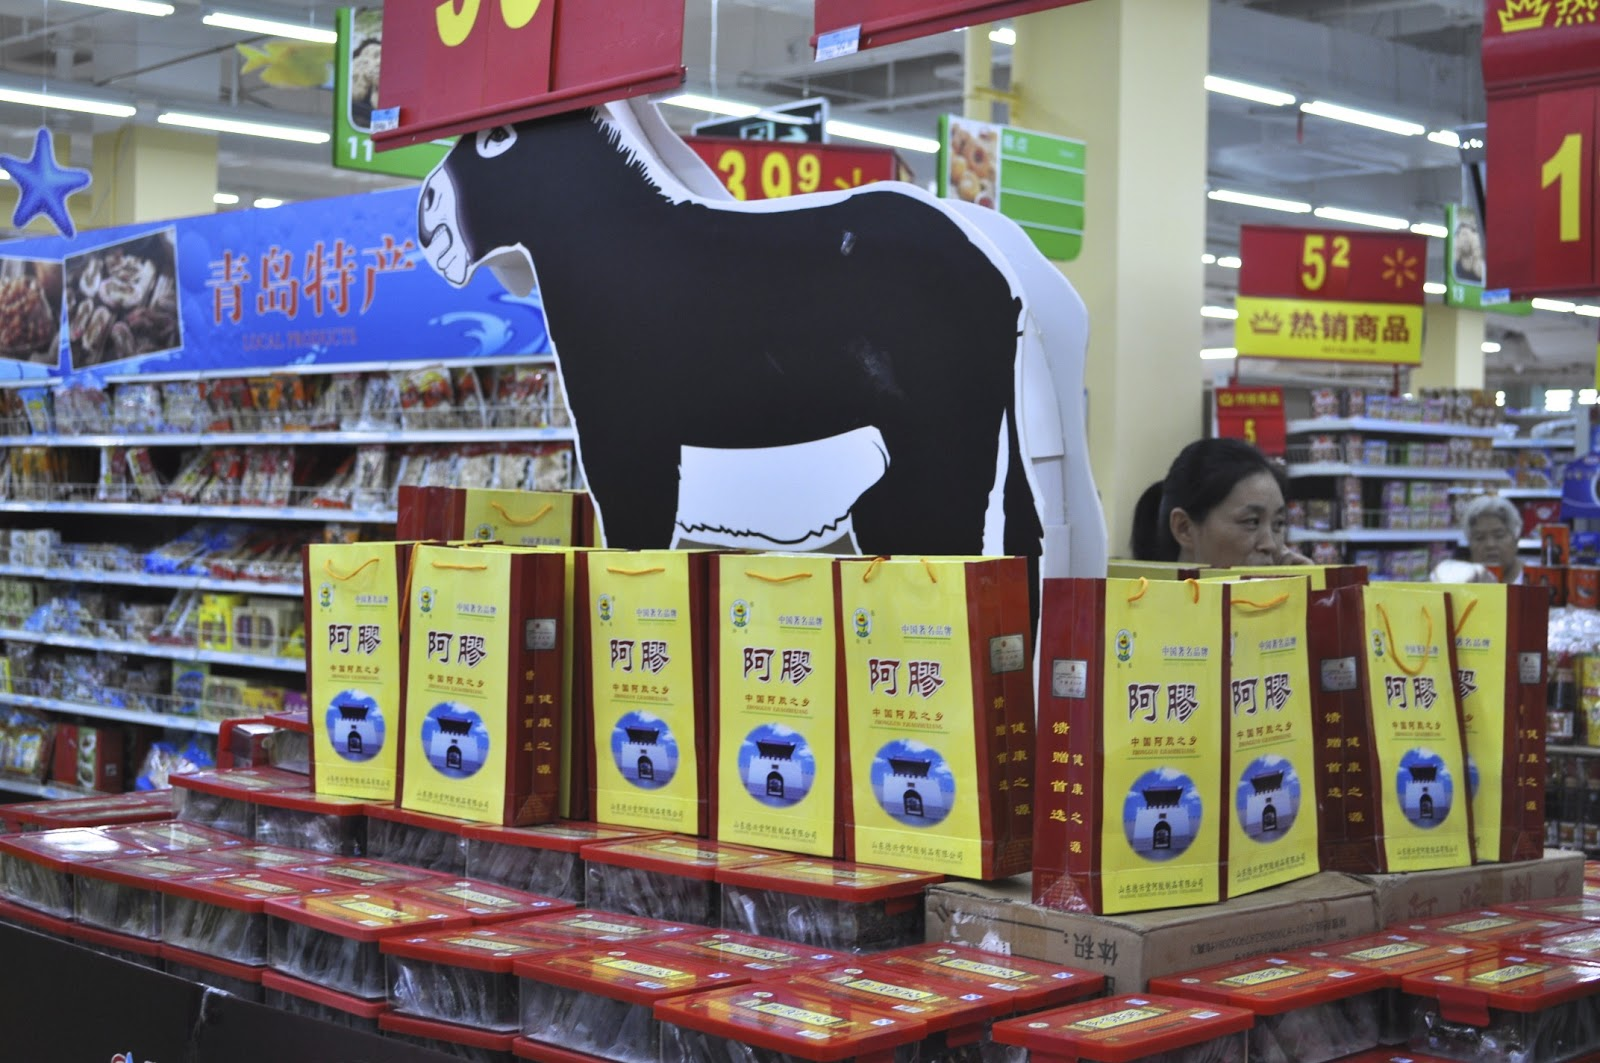 Featuring Your Local Qingdao Walmart The Mosbys In China